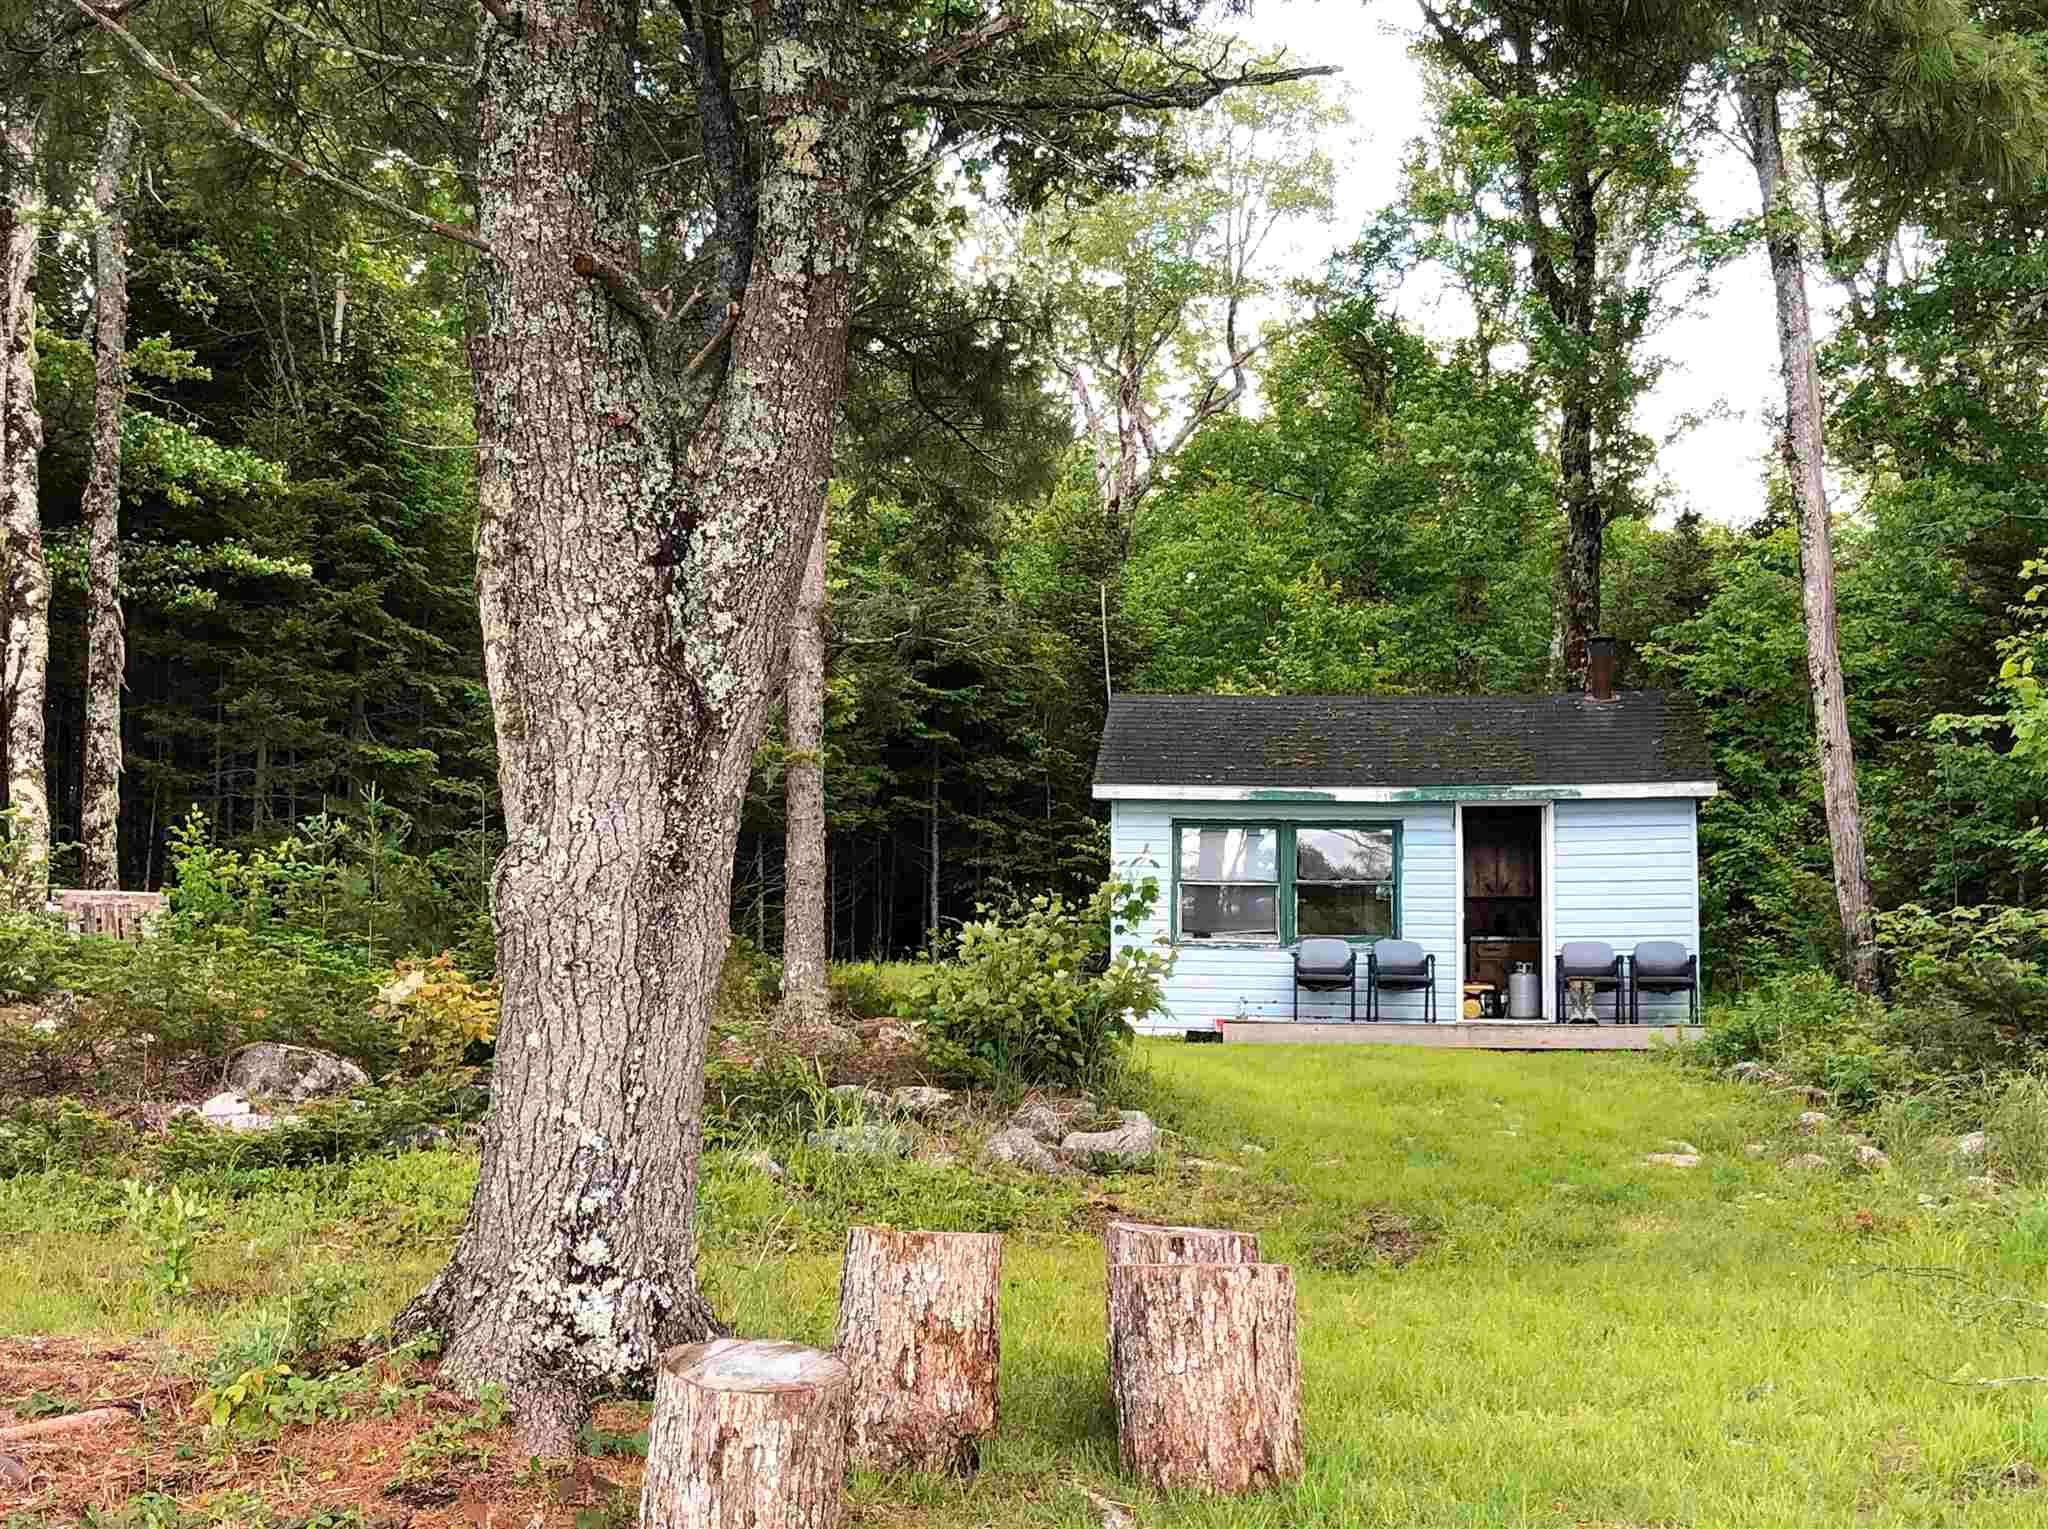 Main Photo: 225 Maple Lane in Mill Road: 405-Lunenburg County Residential for sale (South Shore)  : MLS®# 202115490